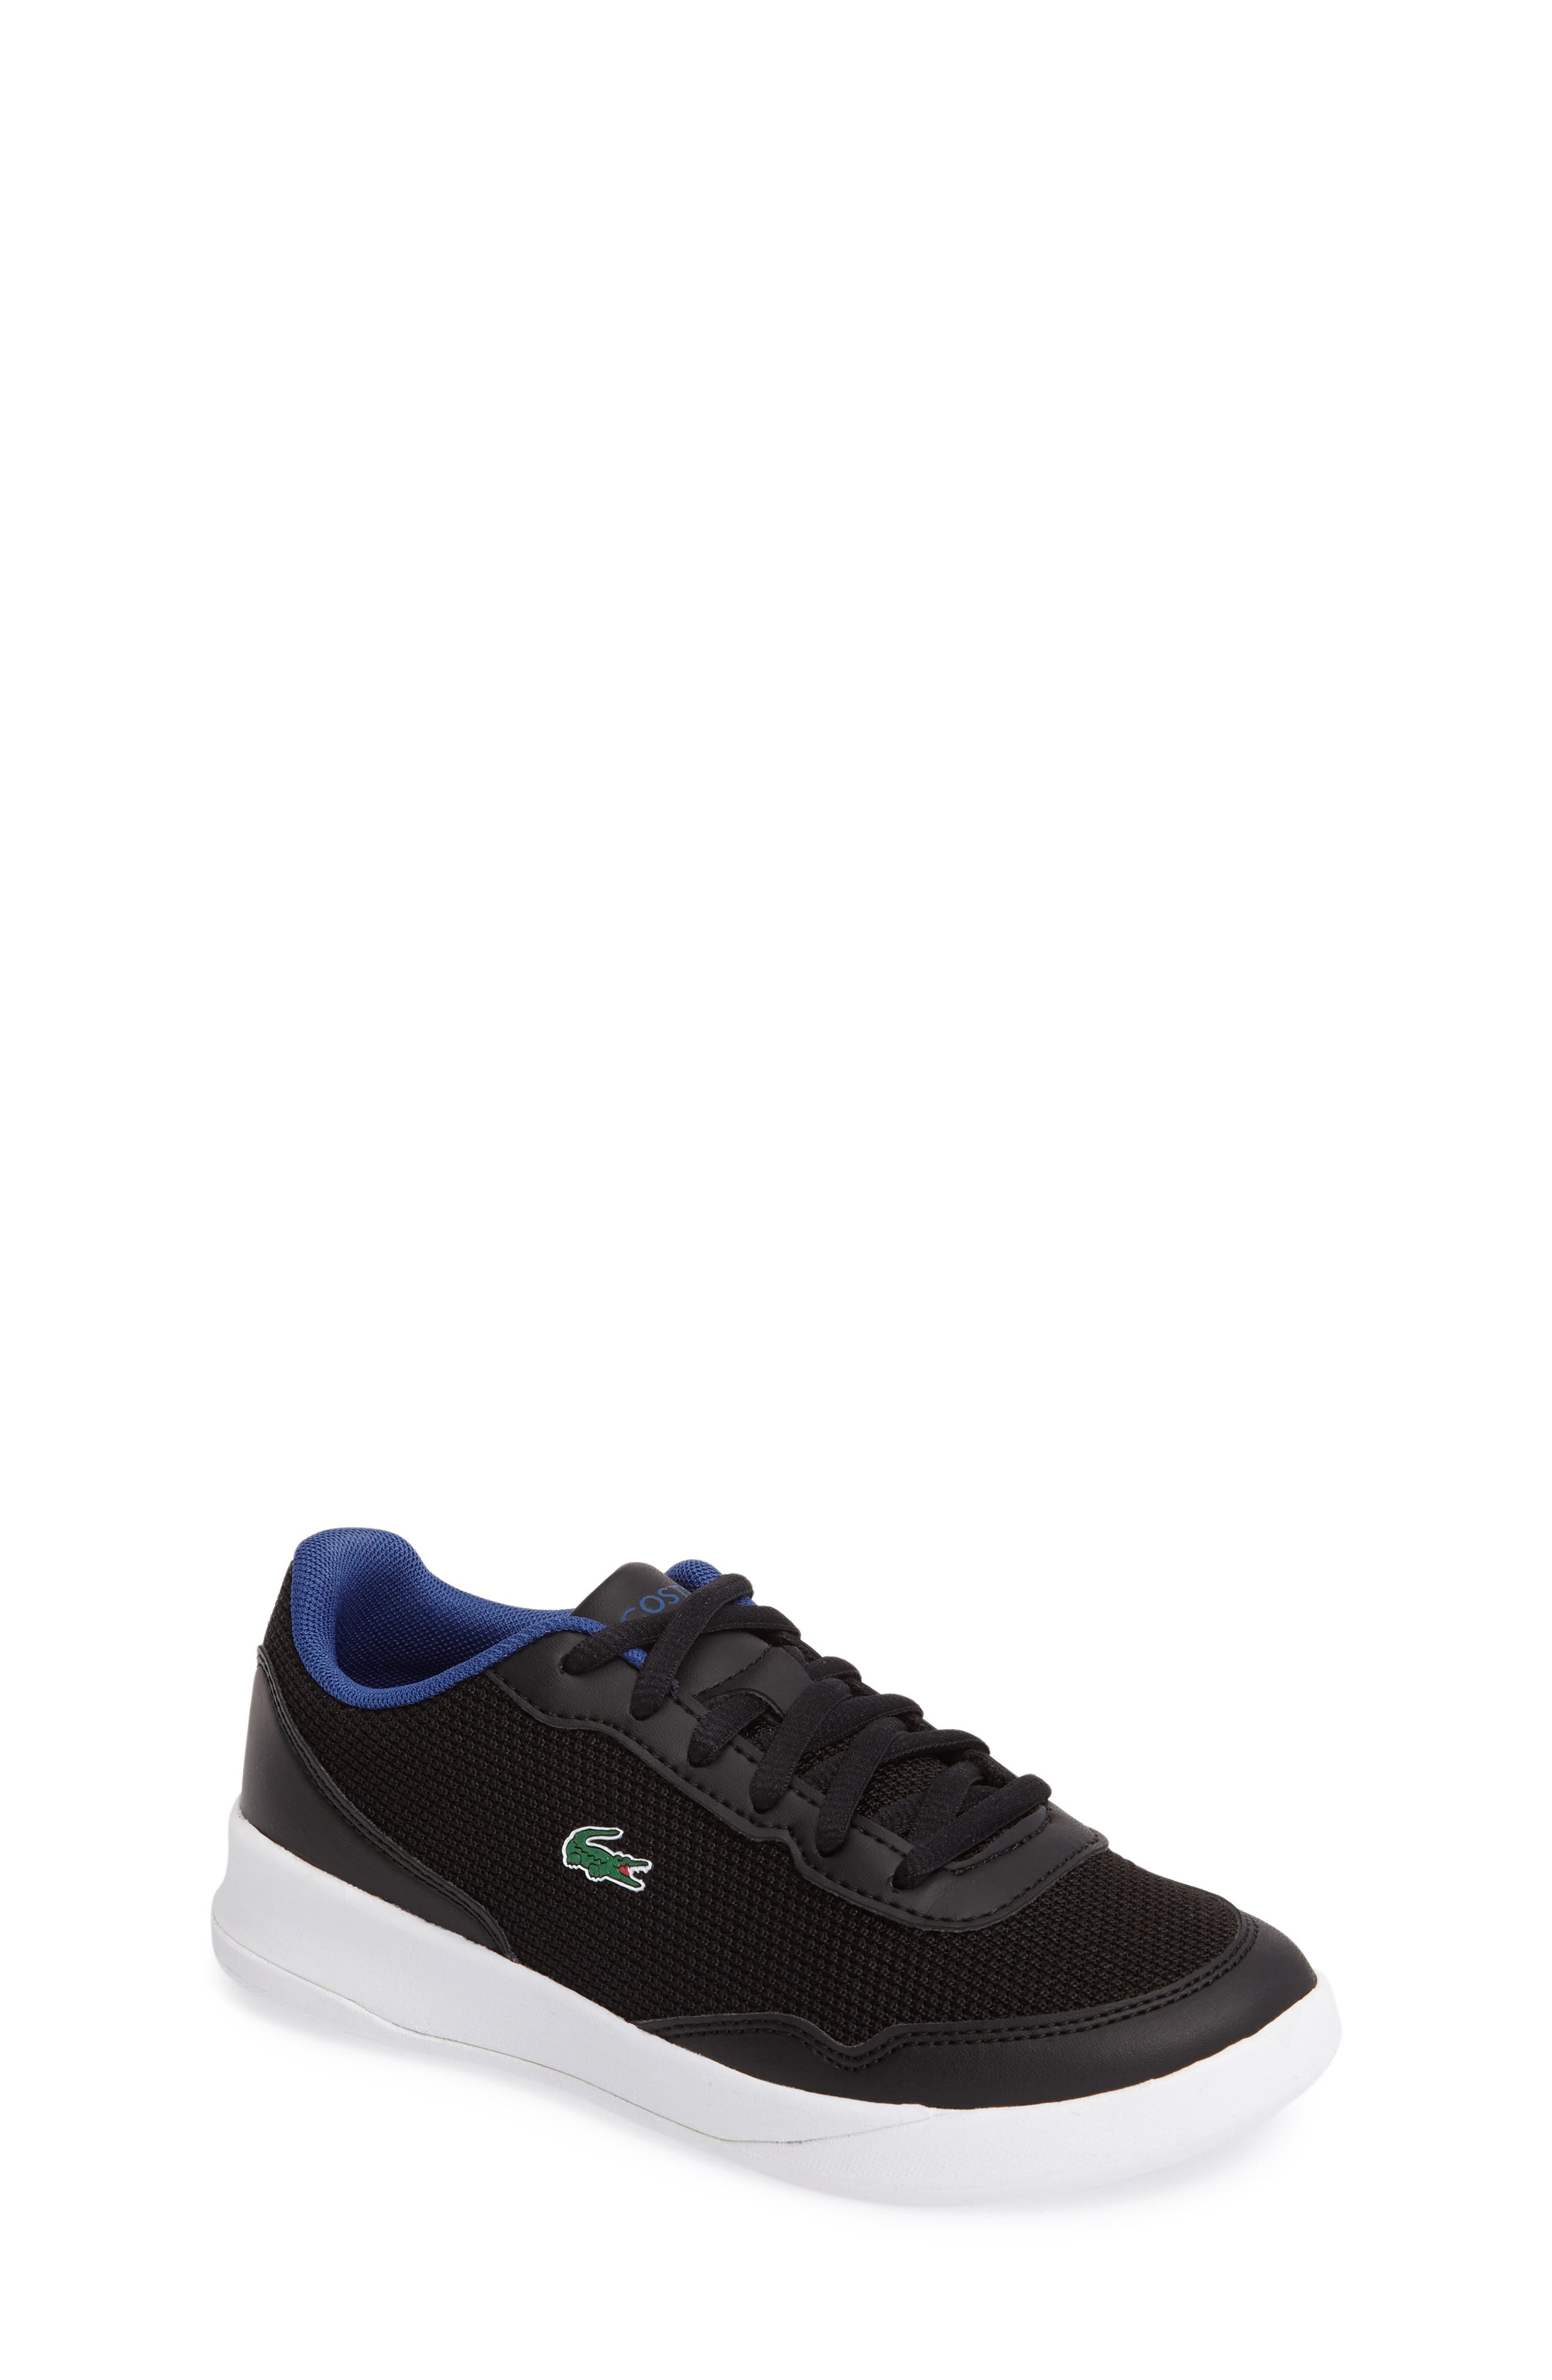 Alternate Image 1 Selected - Lacoste LT Spirit Woven Sneaker (Toddler & Little Kid)